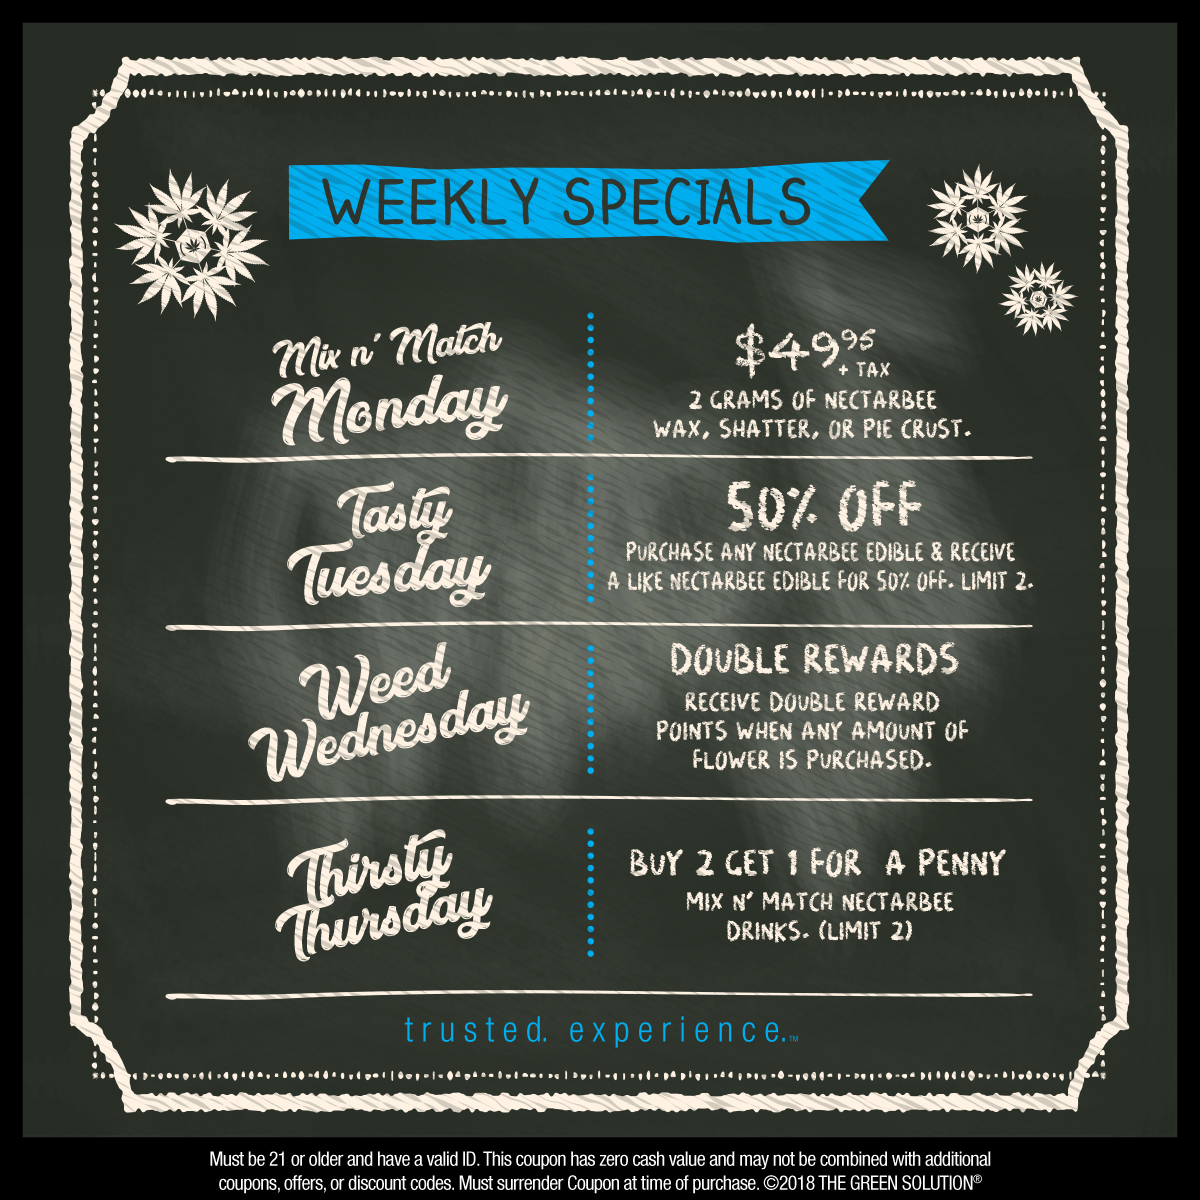 Weekly Specials at The Green Solution - Dec 3-9 Only!